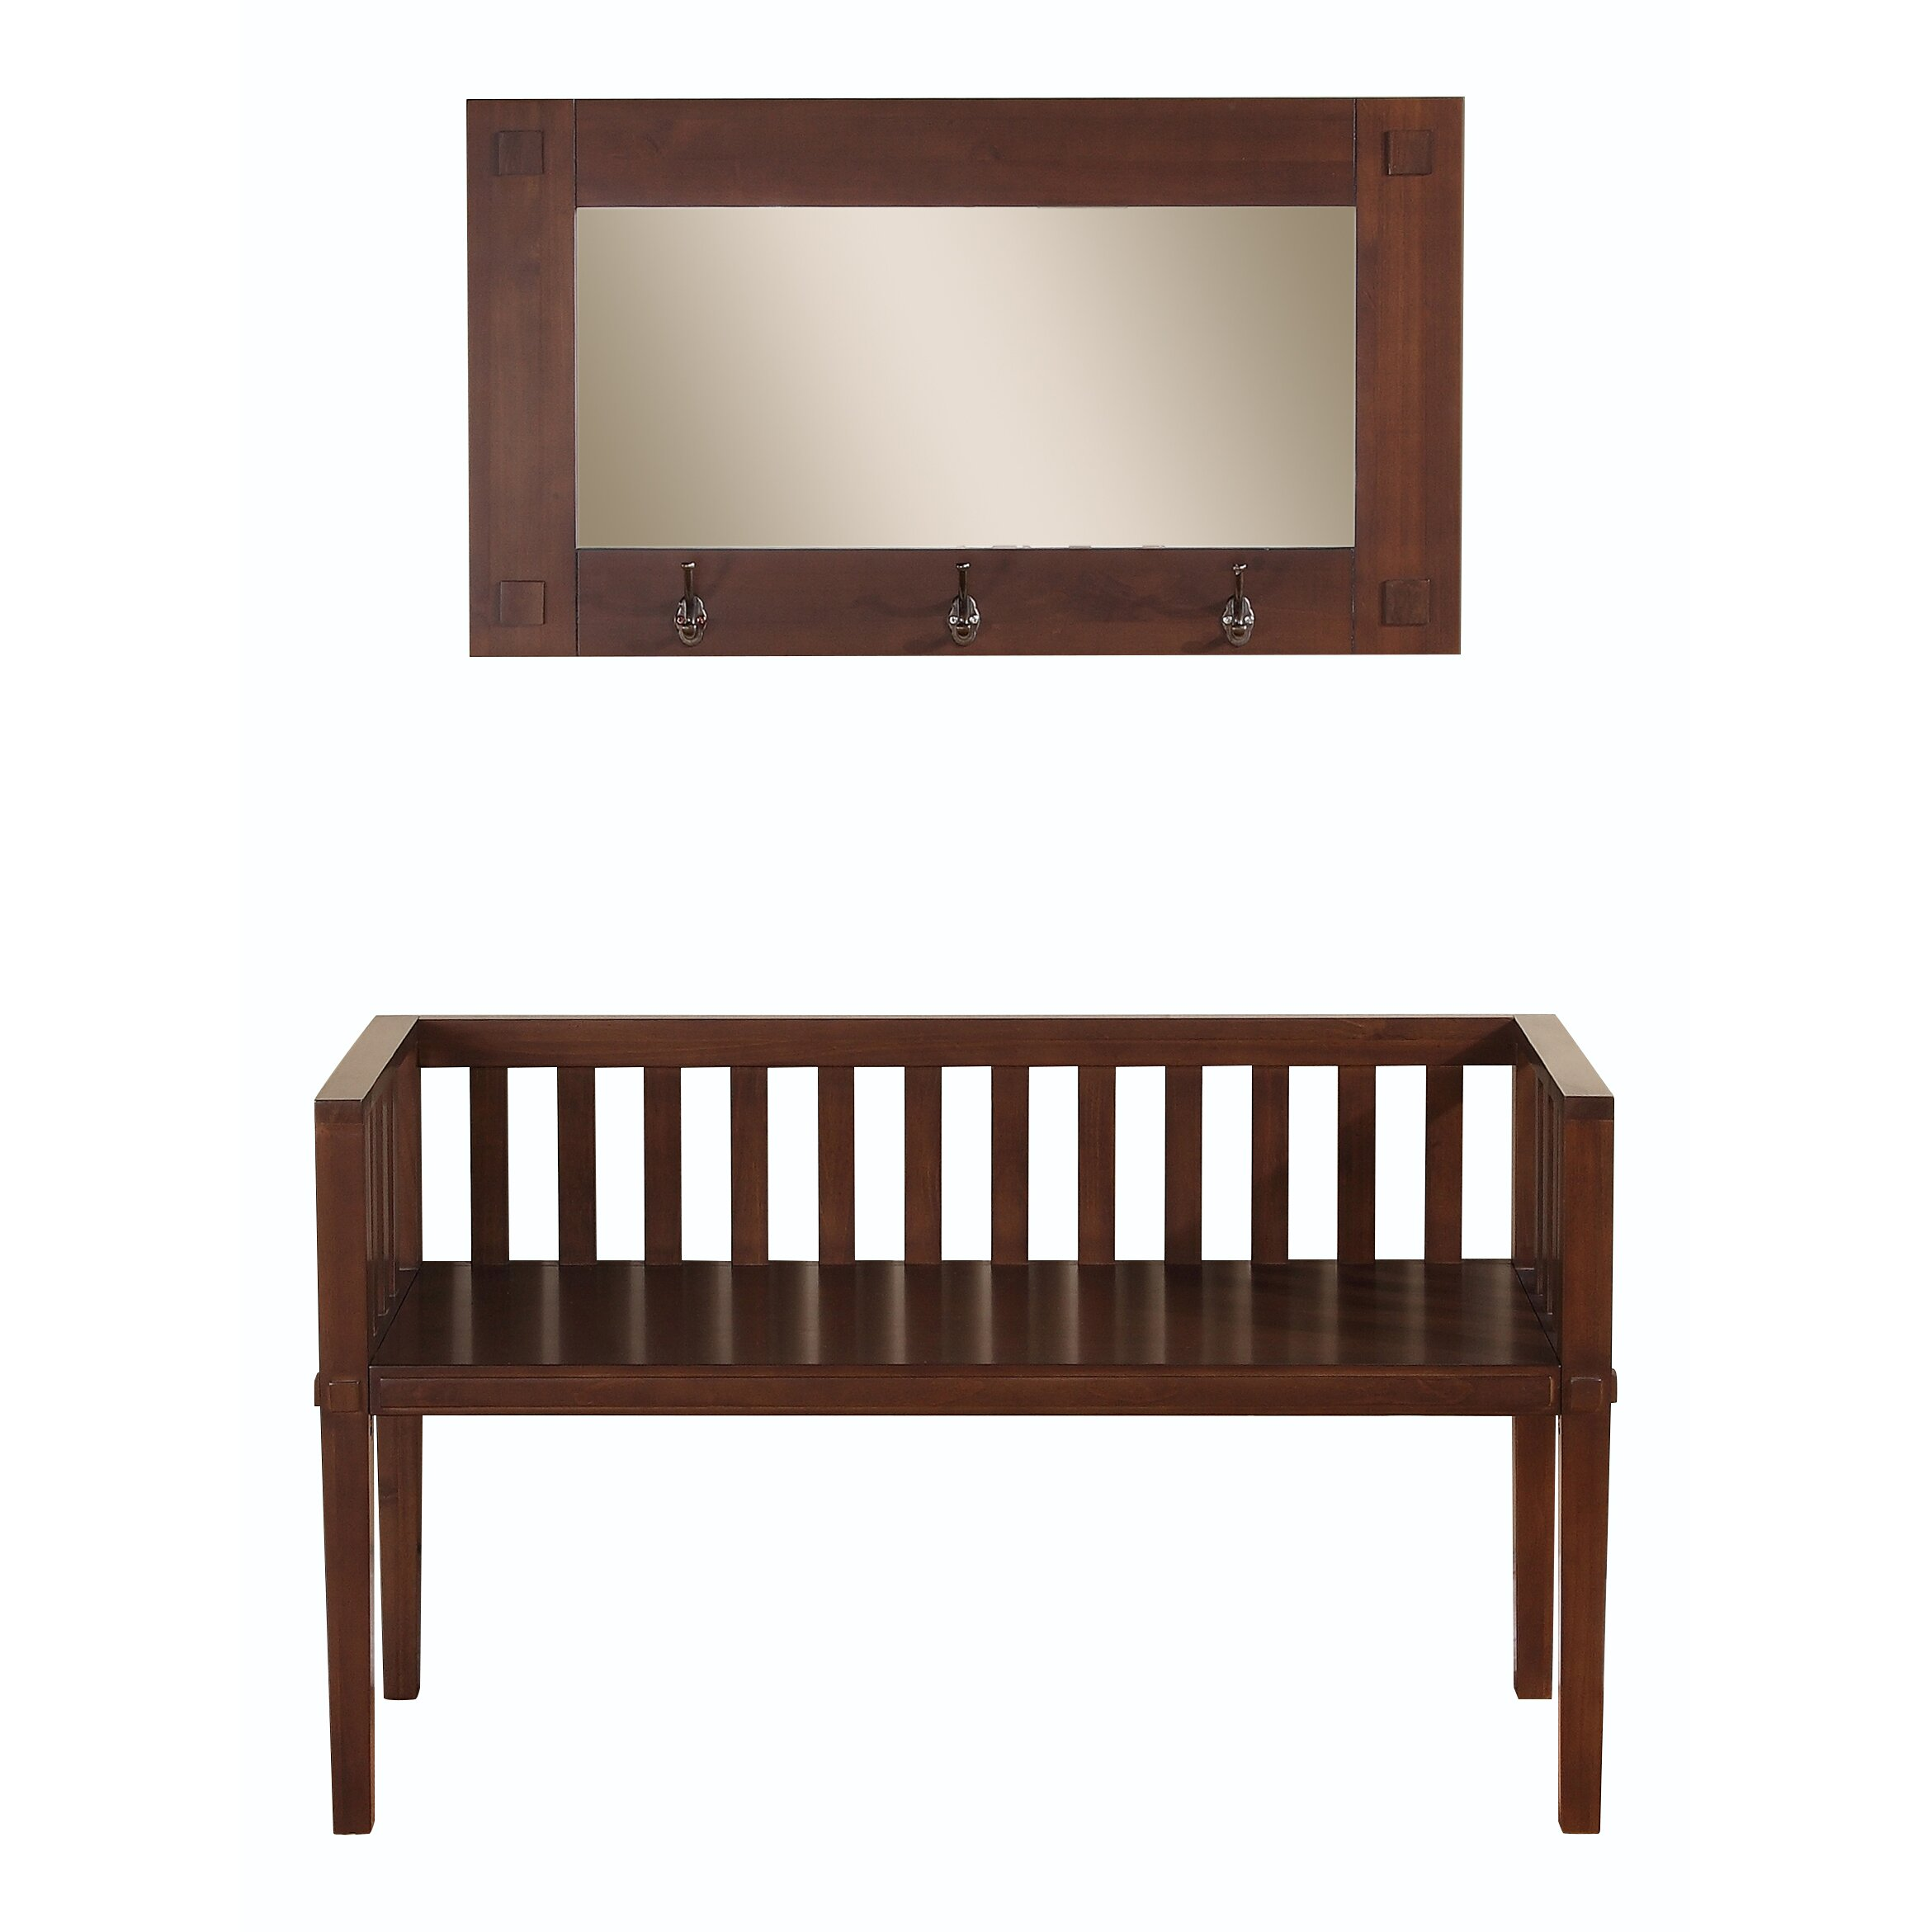 Simpli Home Greyson Wood Storage Entryway Bench With Mirror Reviews Wayfair